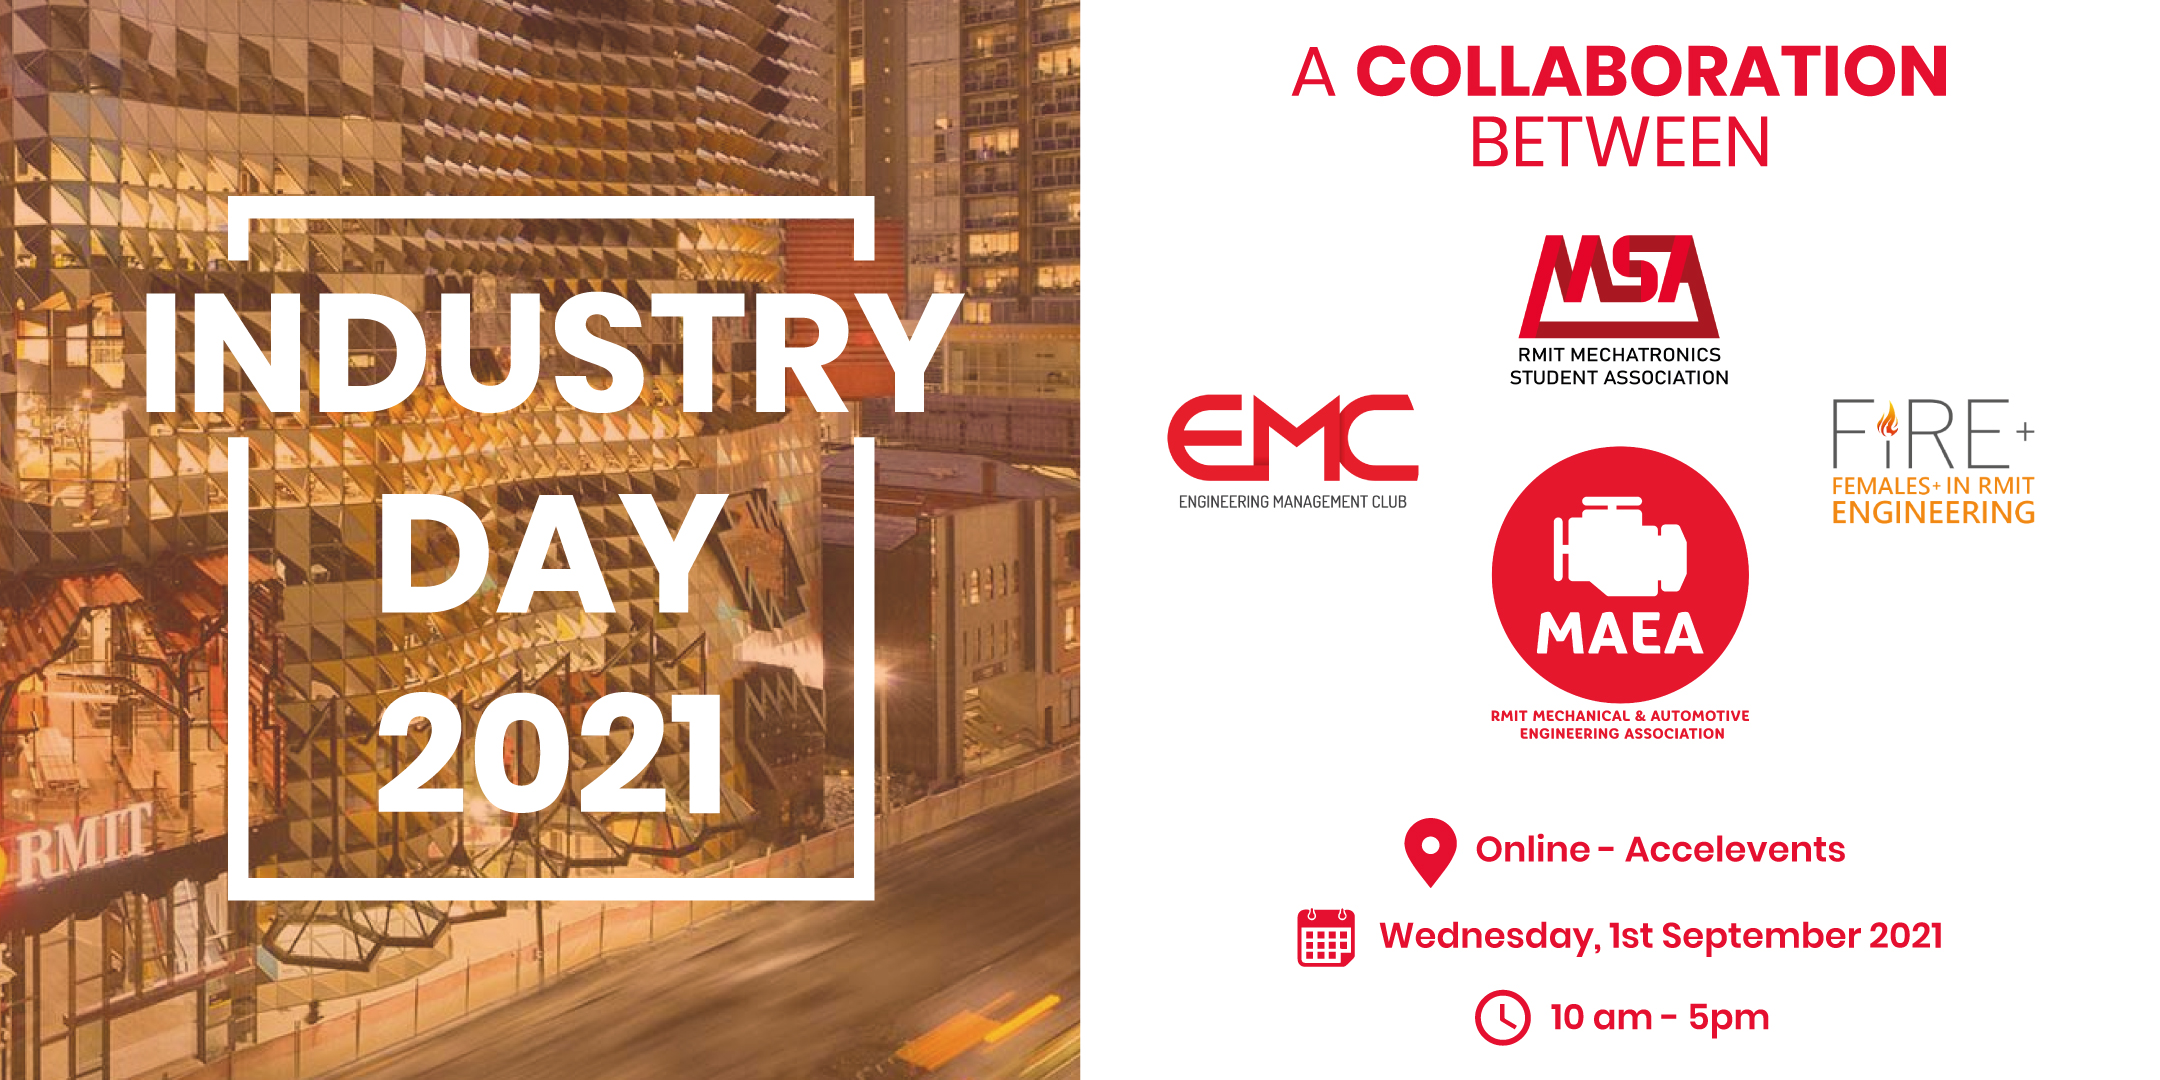 Industry Day 2021 MAEA